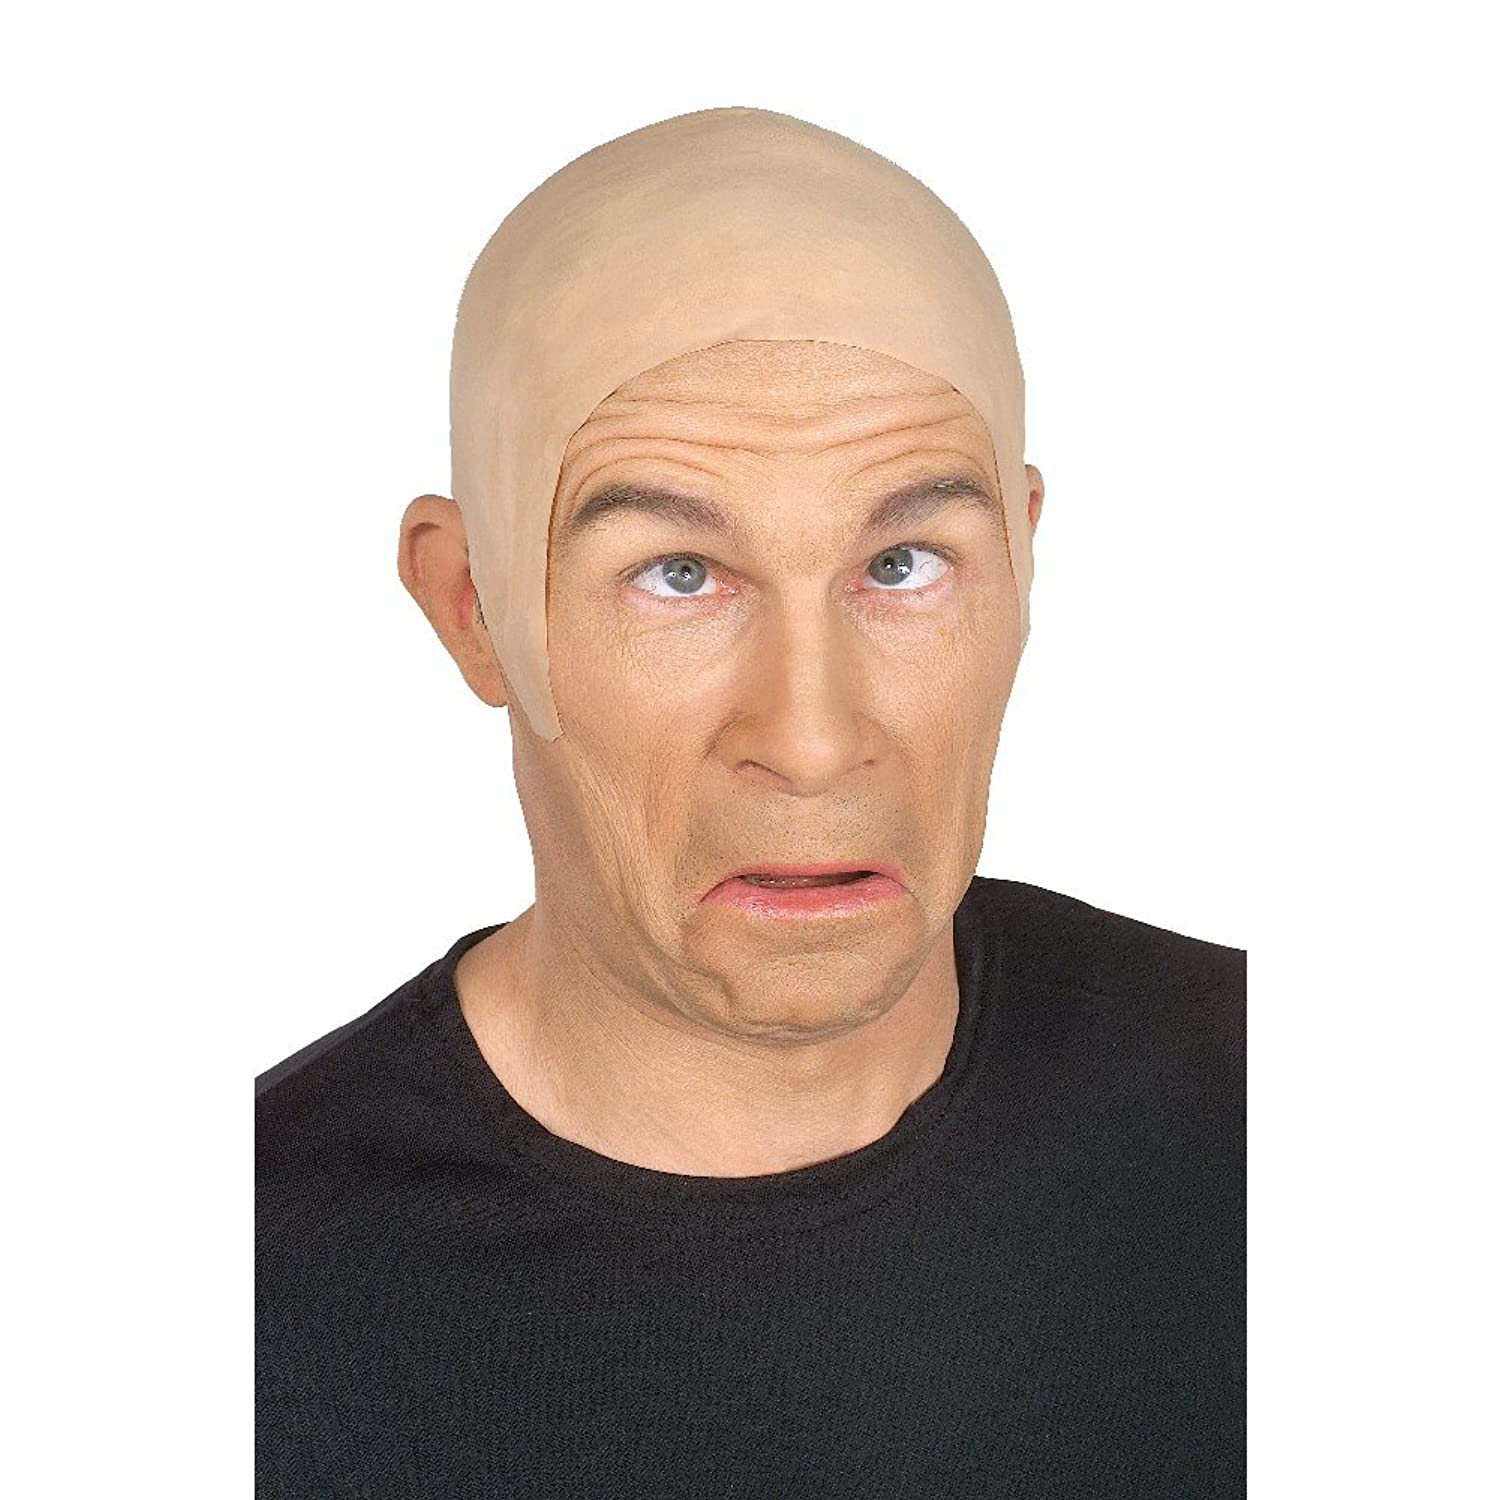 Bald Head Cap Latex Flesh